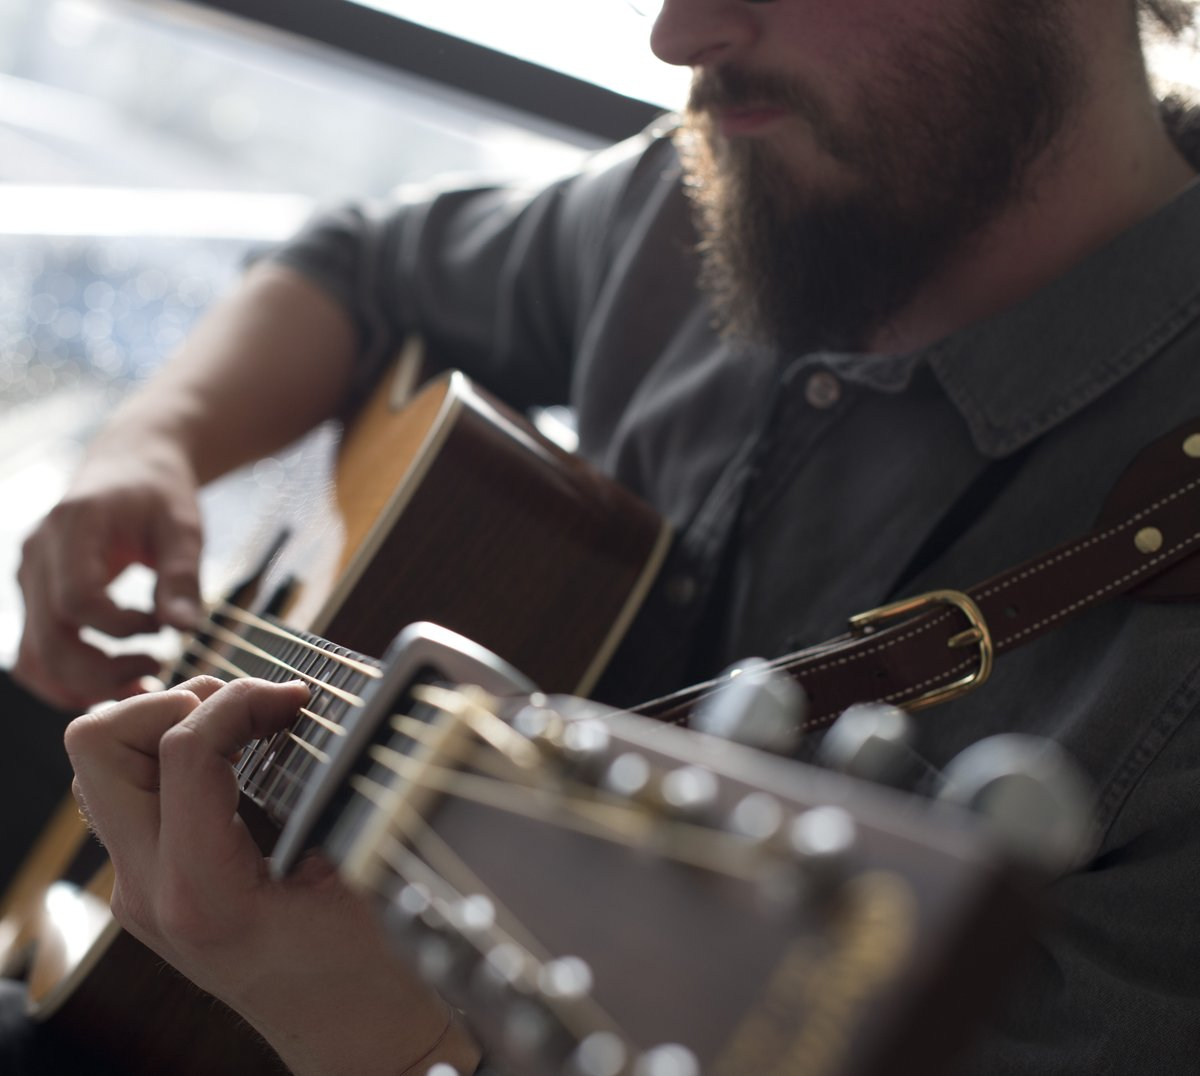 Playing Tomorrow - 14th October from 10am-1pm at Royal Derby Hospital we have the delightful sound of Jamie Rutherford, playing guitar behind the Air Arts screen. @uhdbtrust @hospitalcharity @JMRGuitar @MiHCUK @Derbylive #TeamUHDB #supportlivemusic #hospitalarts #hereforculture